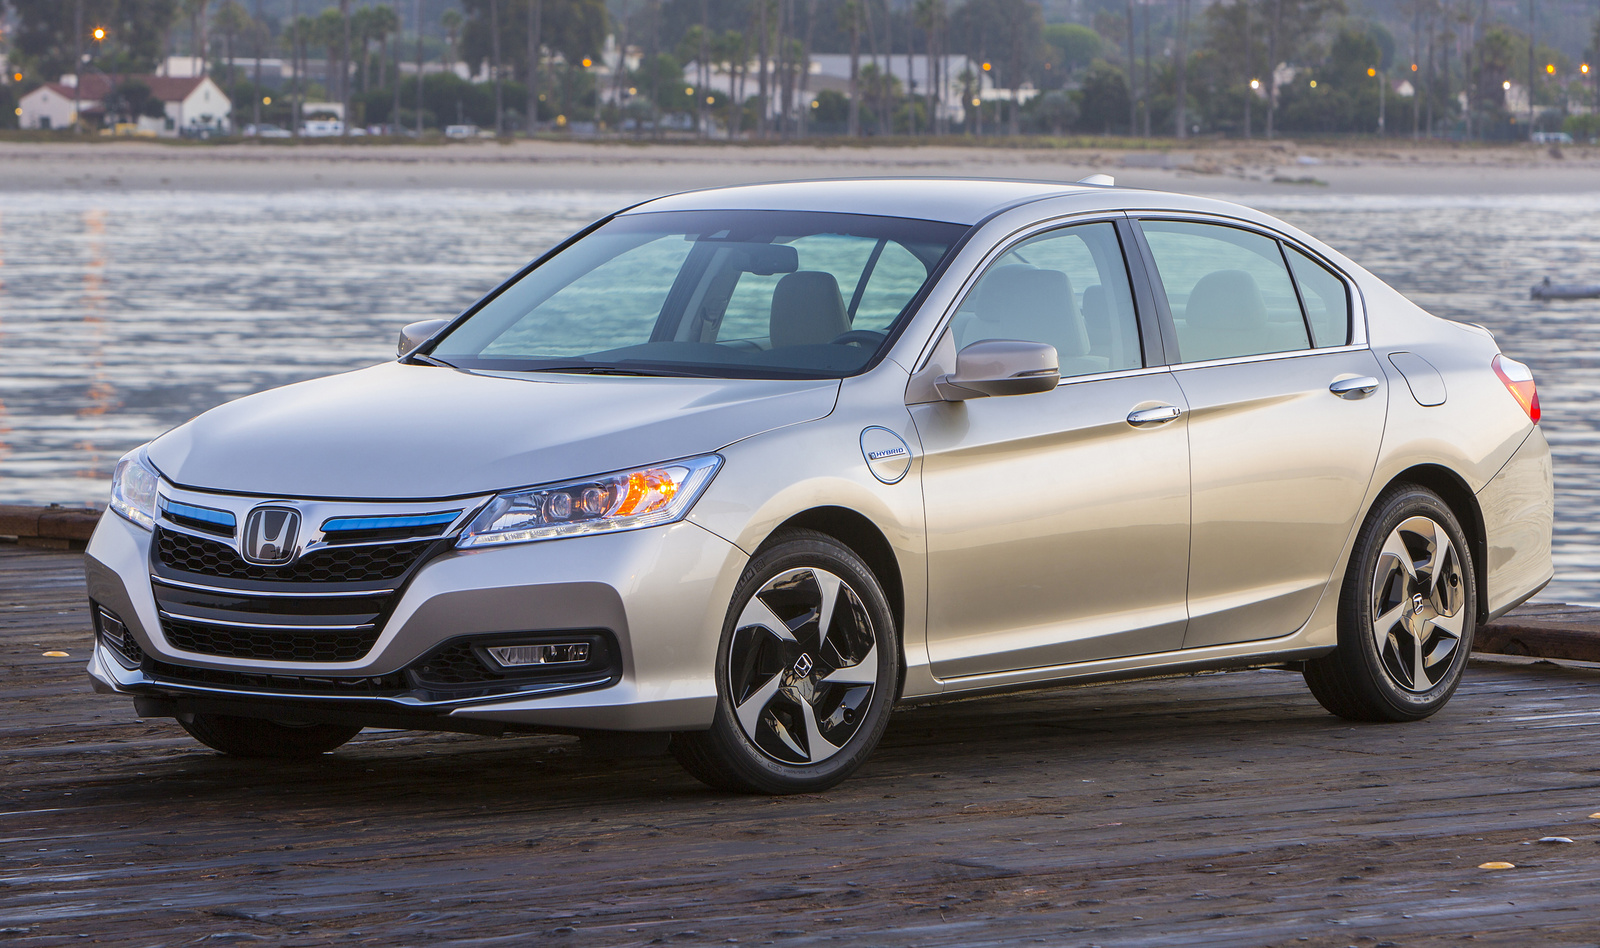 Honda Accord Hybrid #12